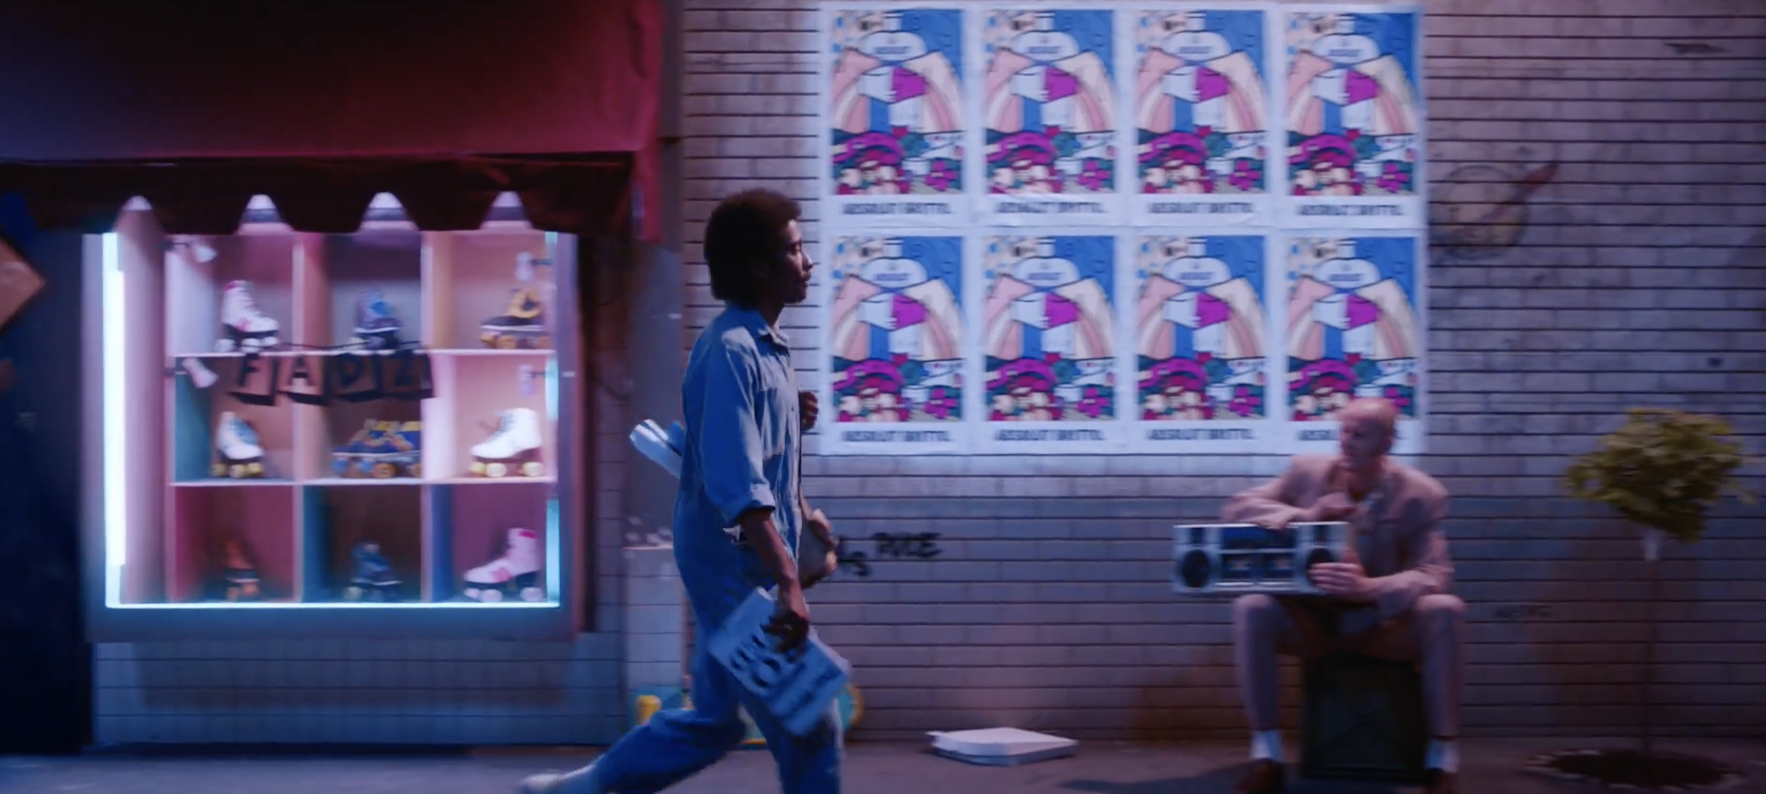 Absolut Launches Global Creative Competition with Sonic Segue Through the Decades